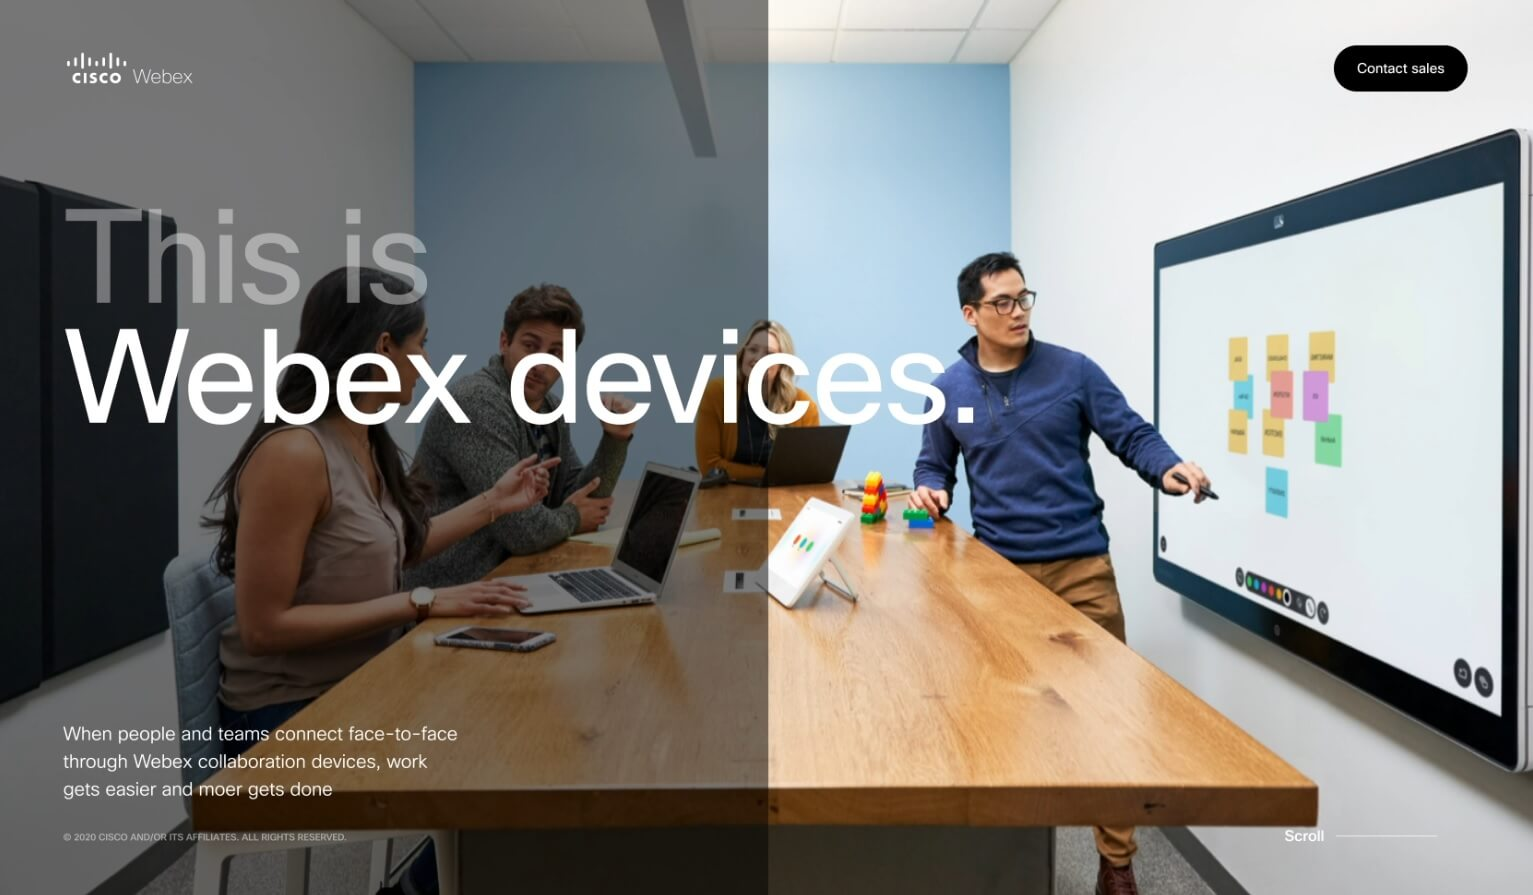 webex devices page